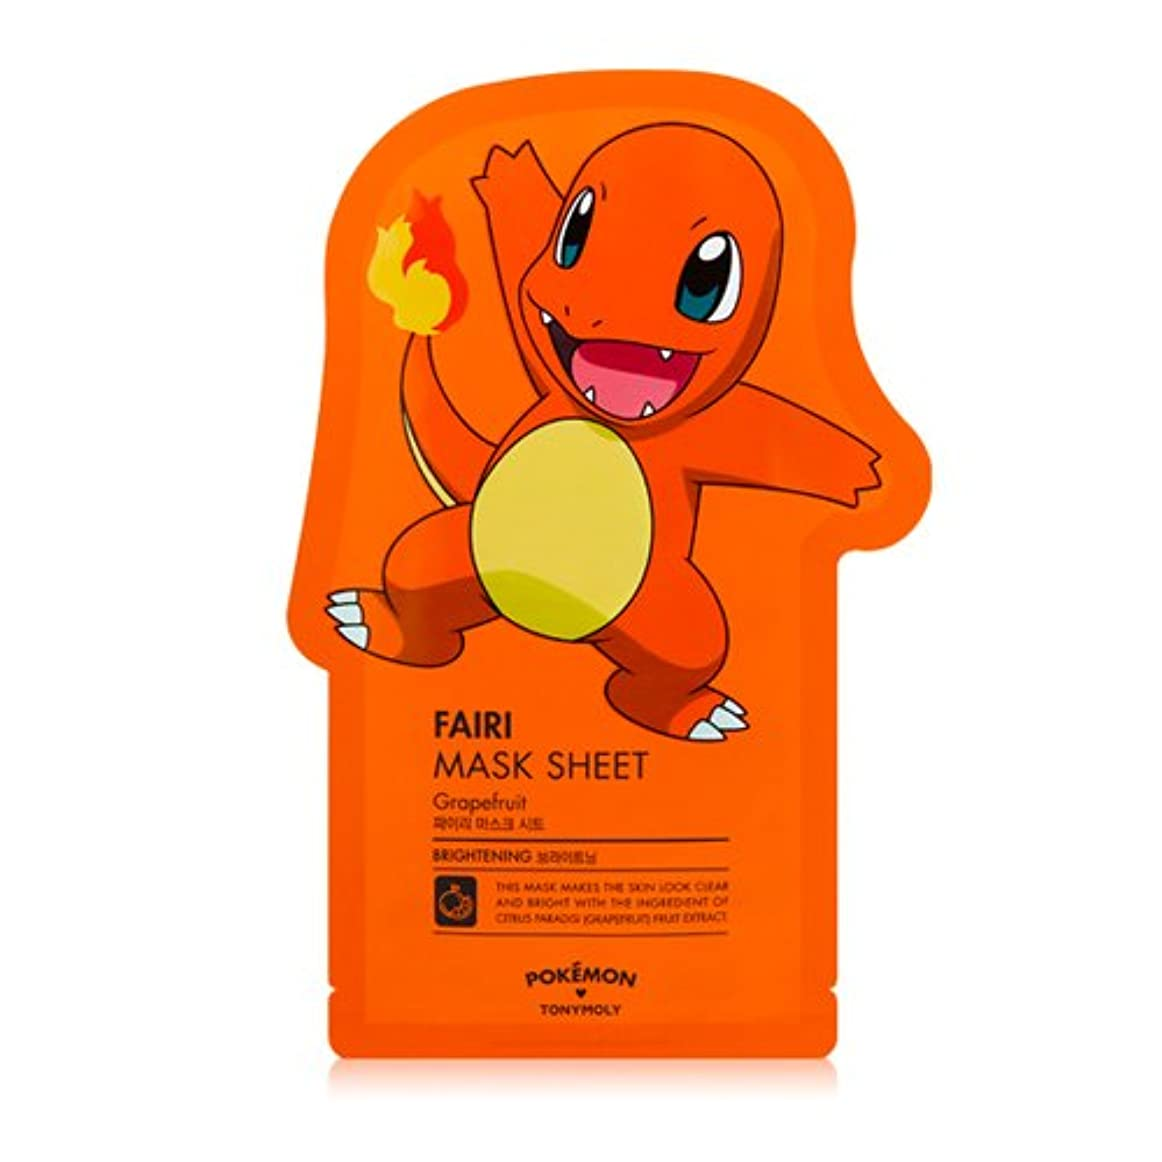 祝福プレゼンター特異な(6 Pack) TONYMOLY x Pokemon Charmander/Fairi Mask Sheet (並行輸入品)